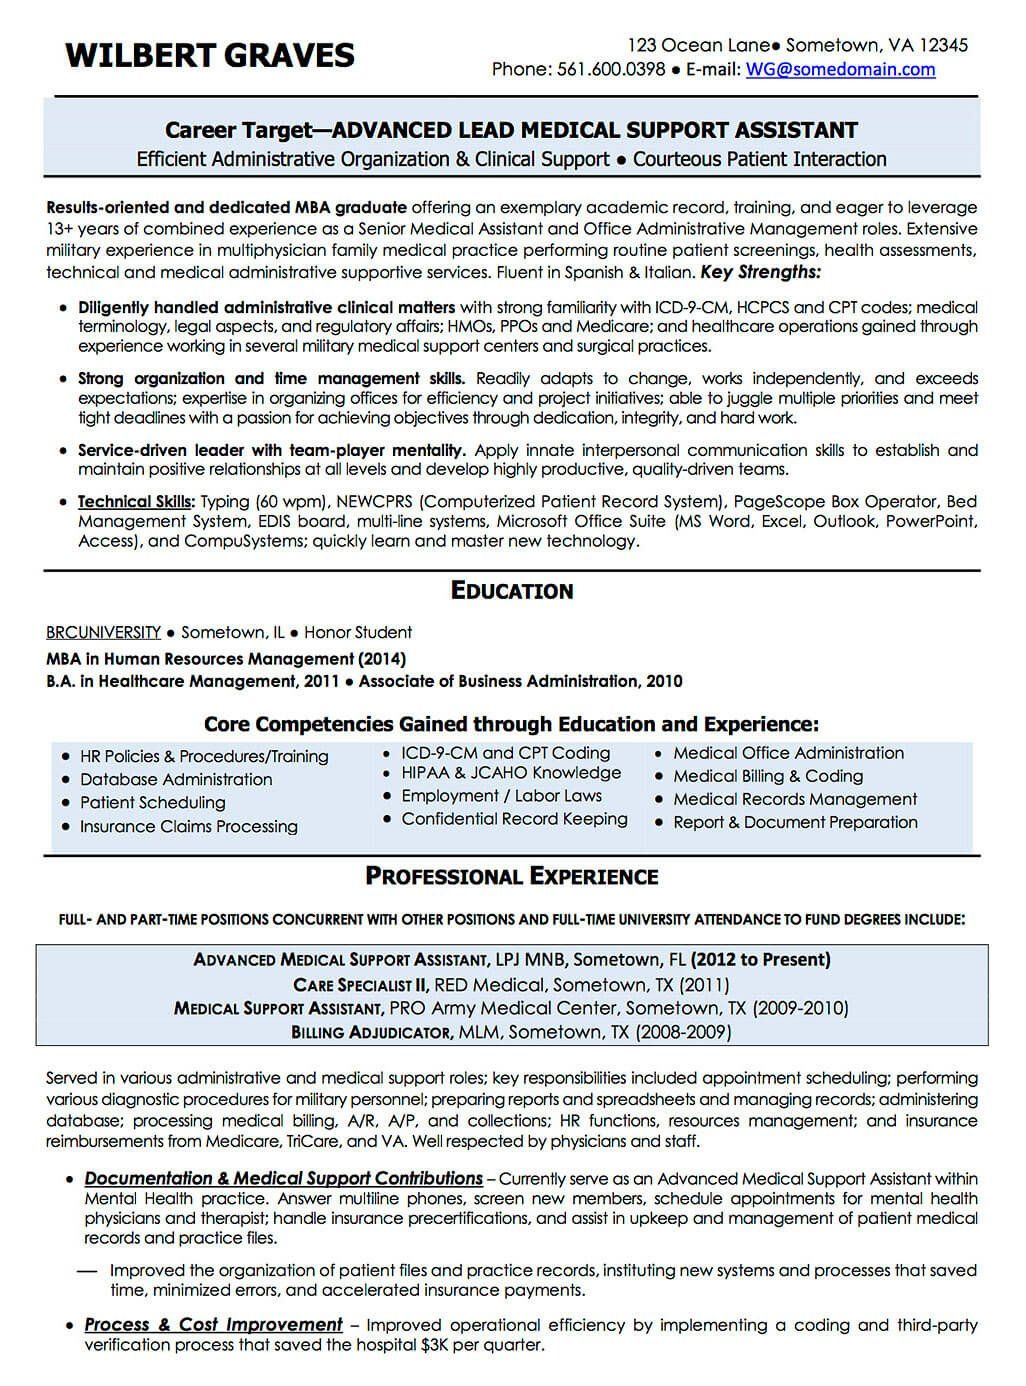 Resume Examples CV Sample Resume Templates RSO Resumes